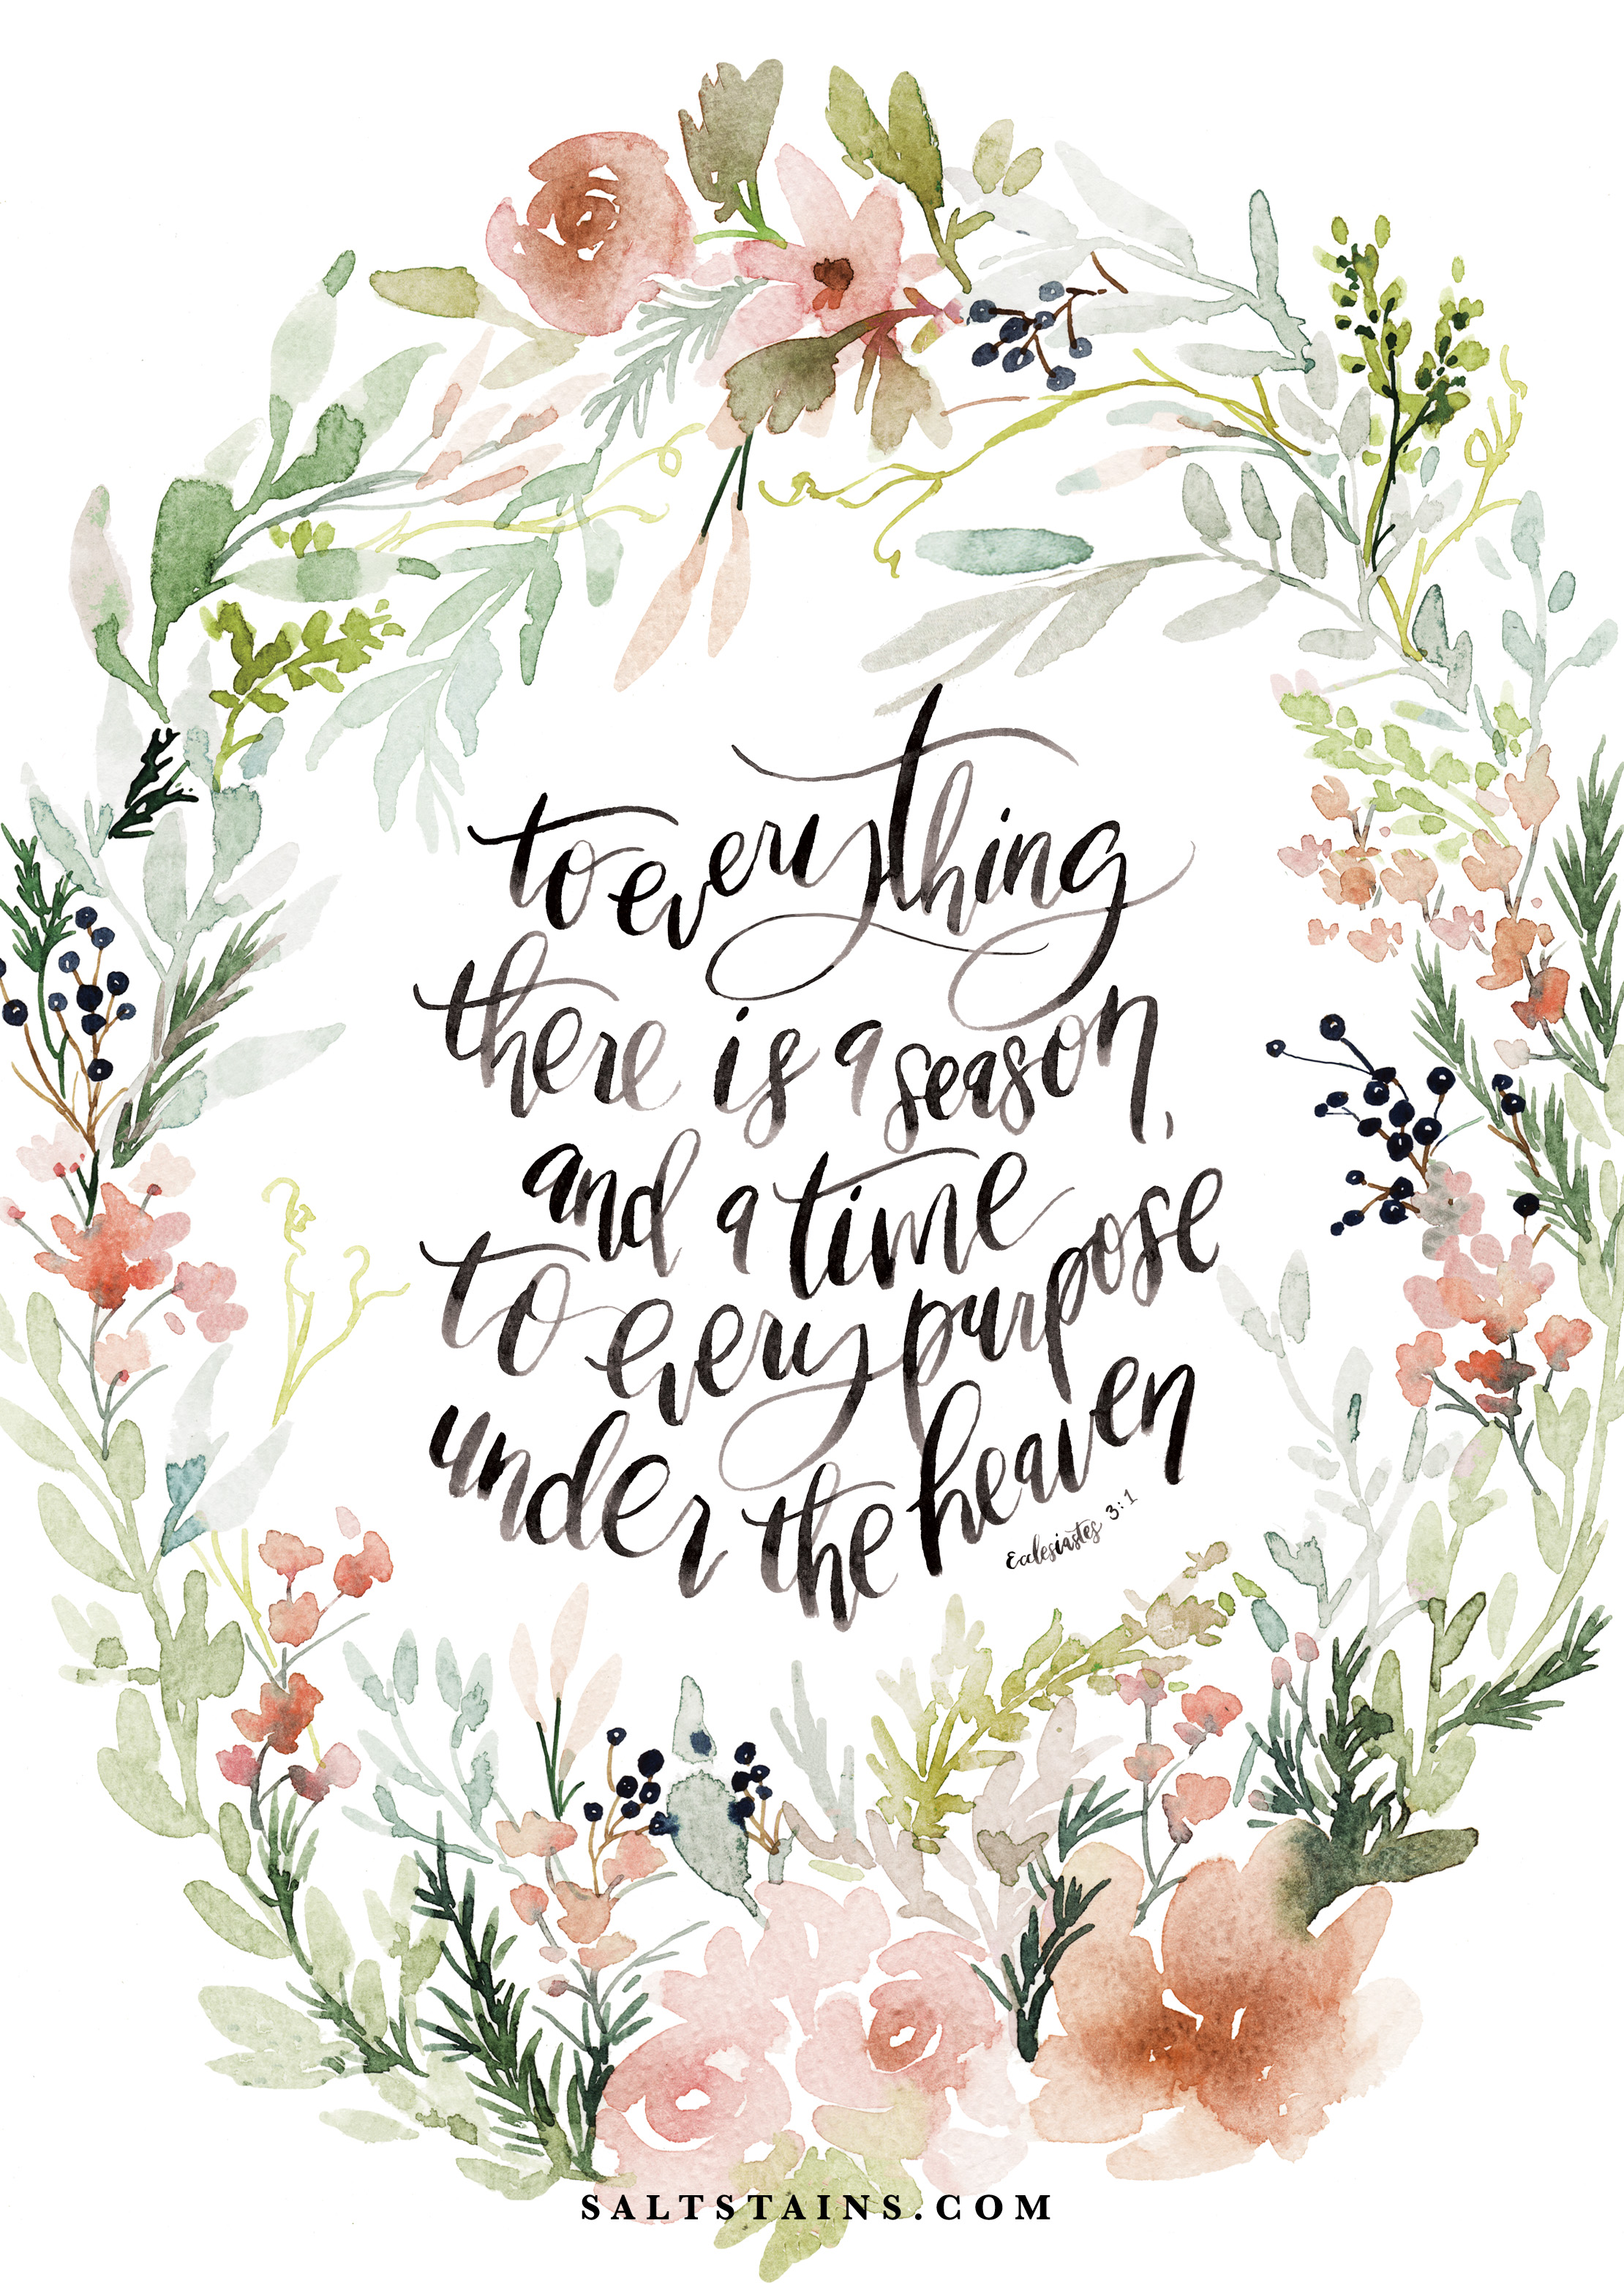 God Is Within Her She Will Not Fall Wallpaper Scripture Wallpaper A Season Amp A Time Salt Stains